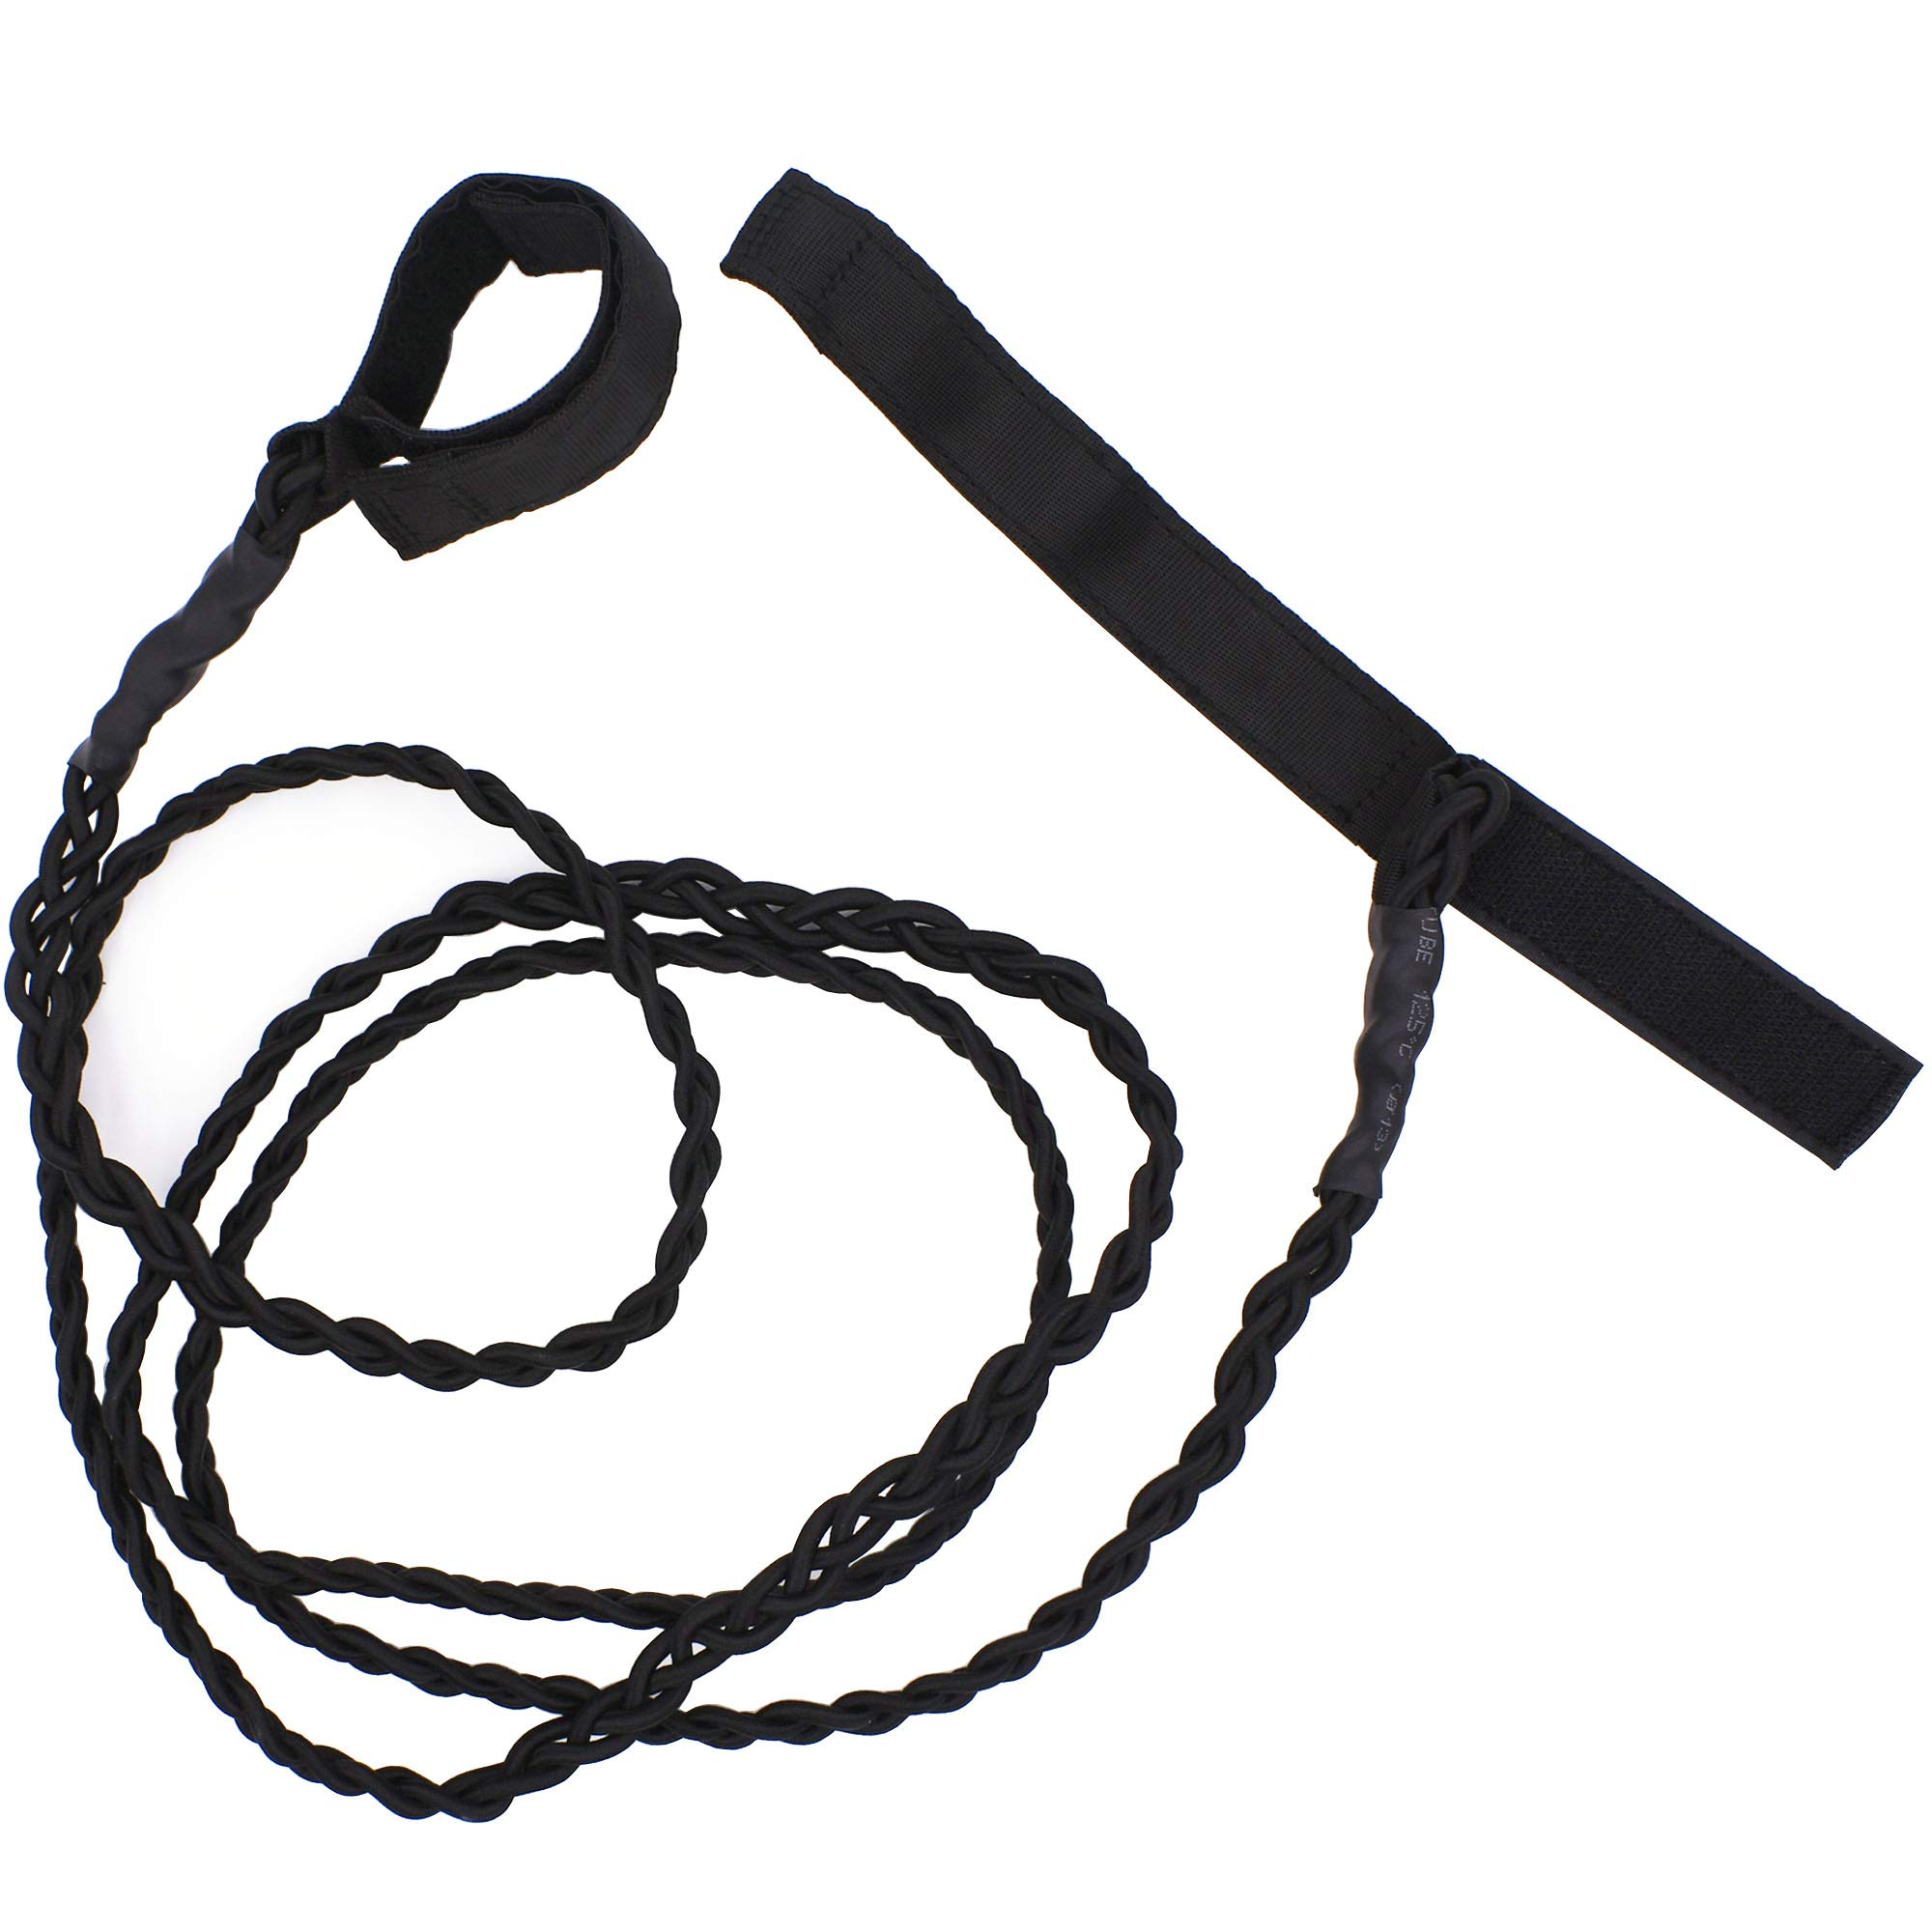 YYST Tri-Corded Travel Clothesline for Hotel